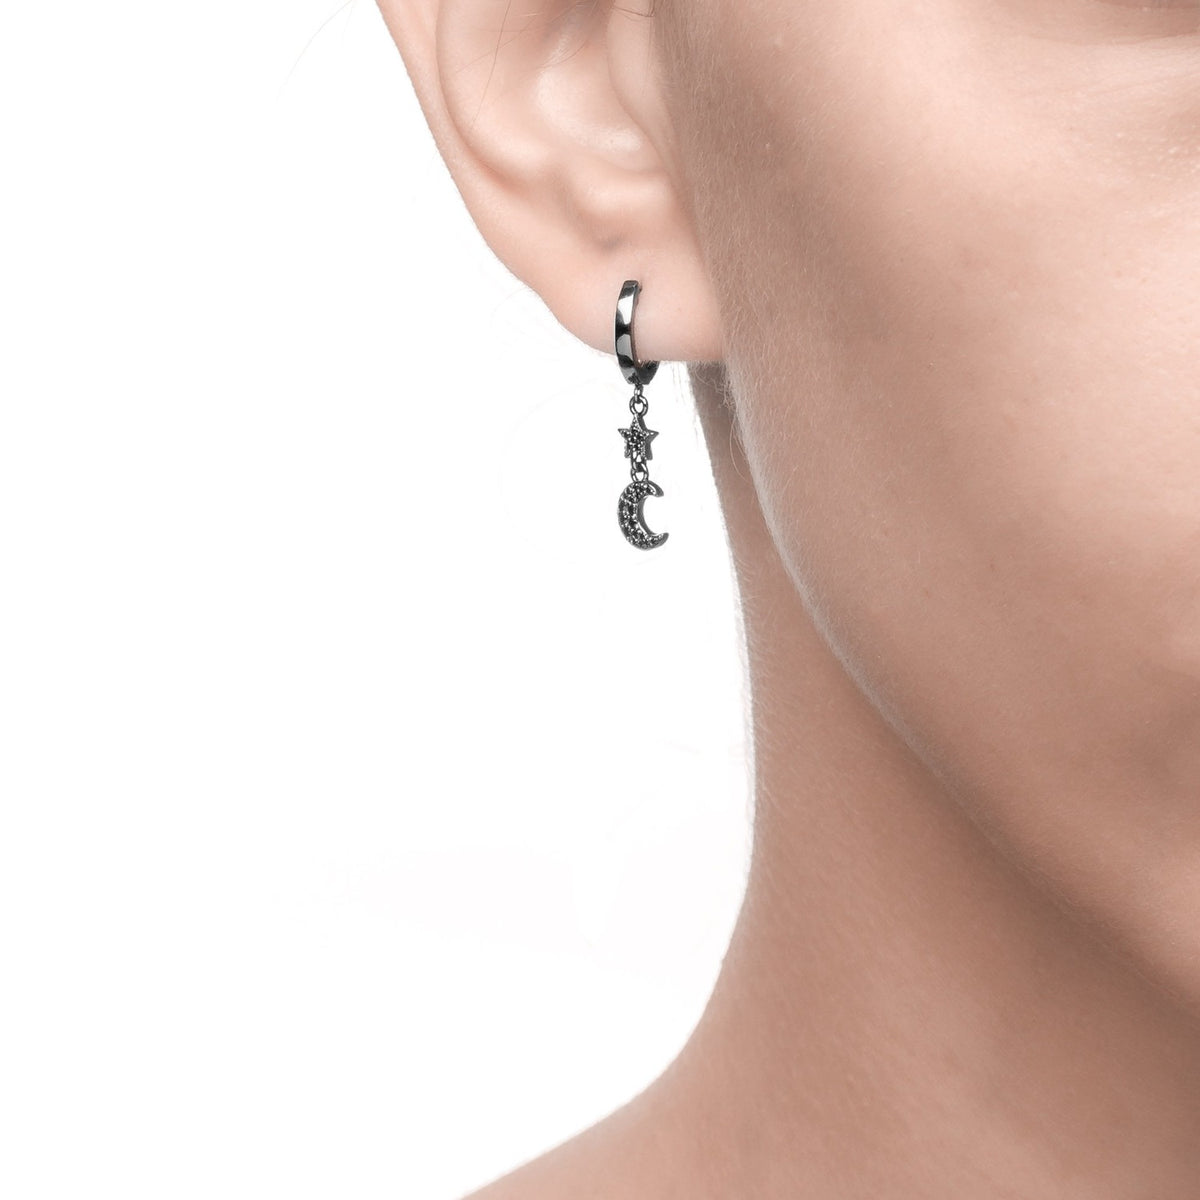 Fortuna | Ravenna Earrings | 925 Silver | Black CZ | Black Rhodium Plated